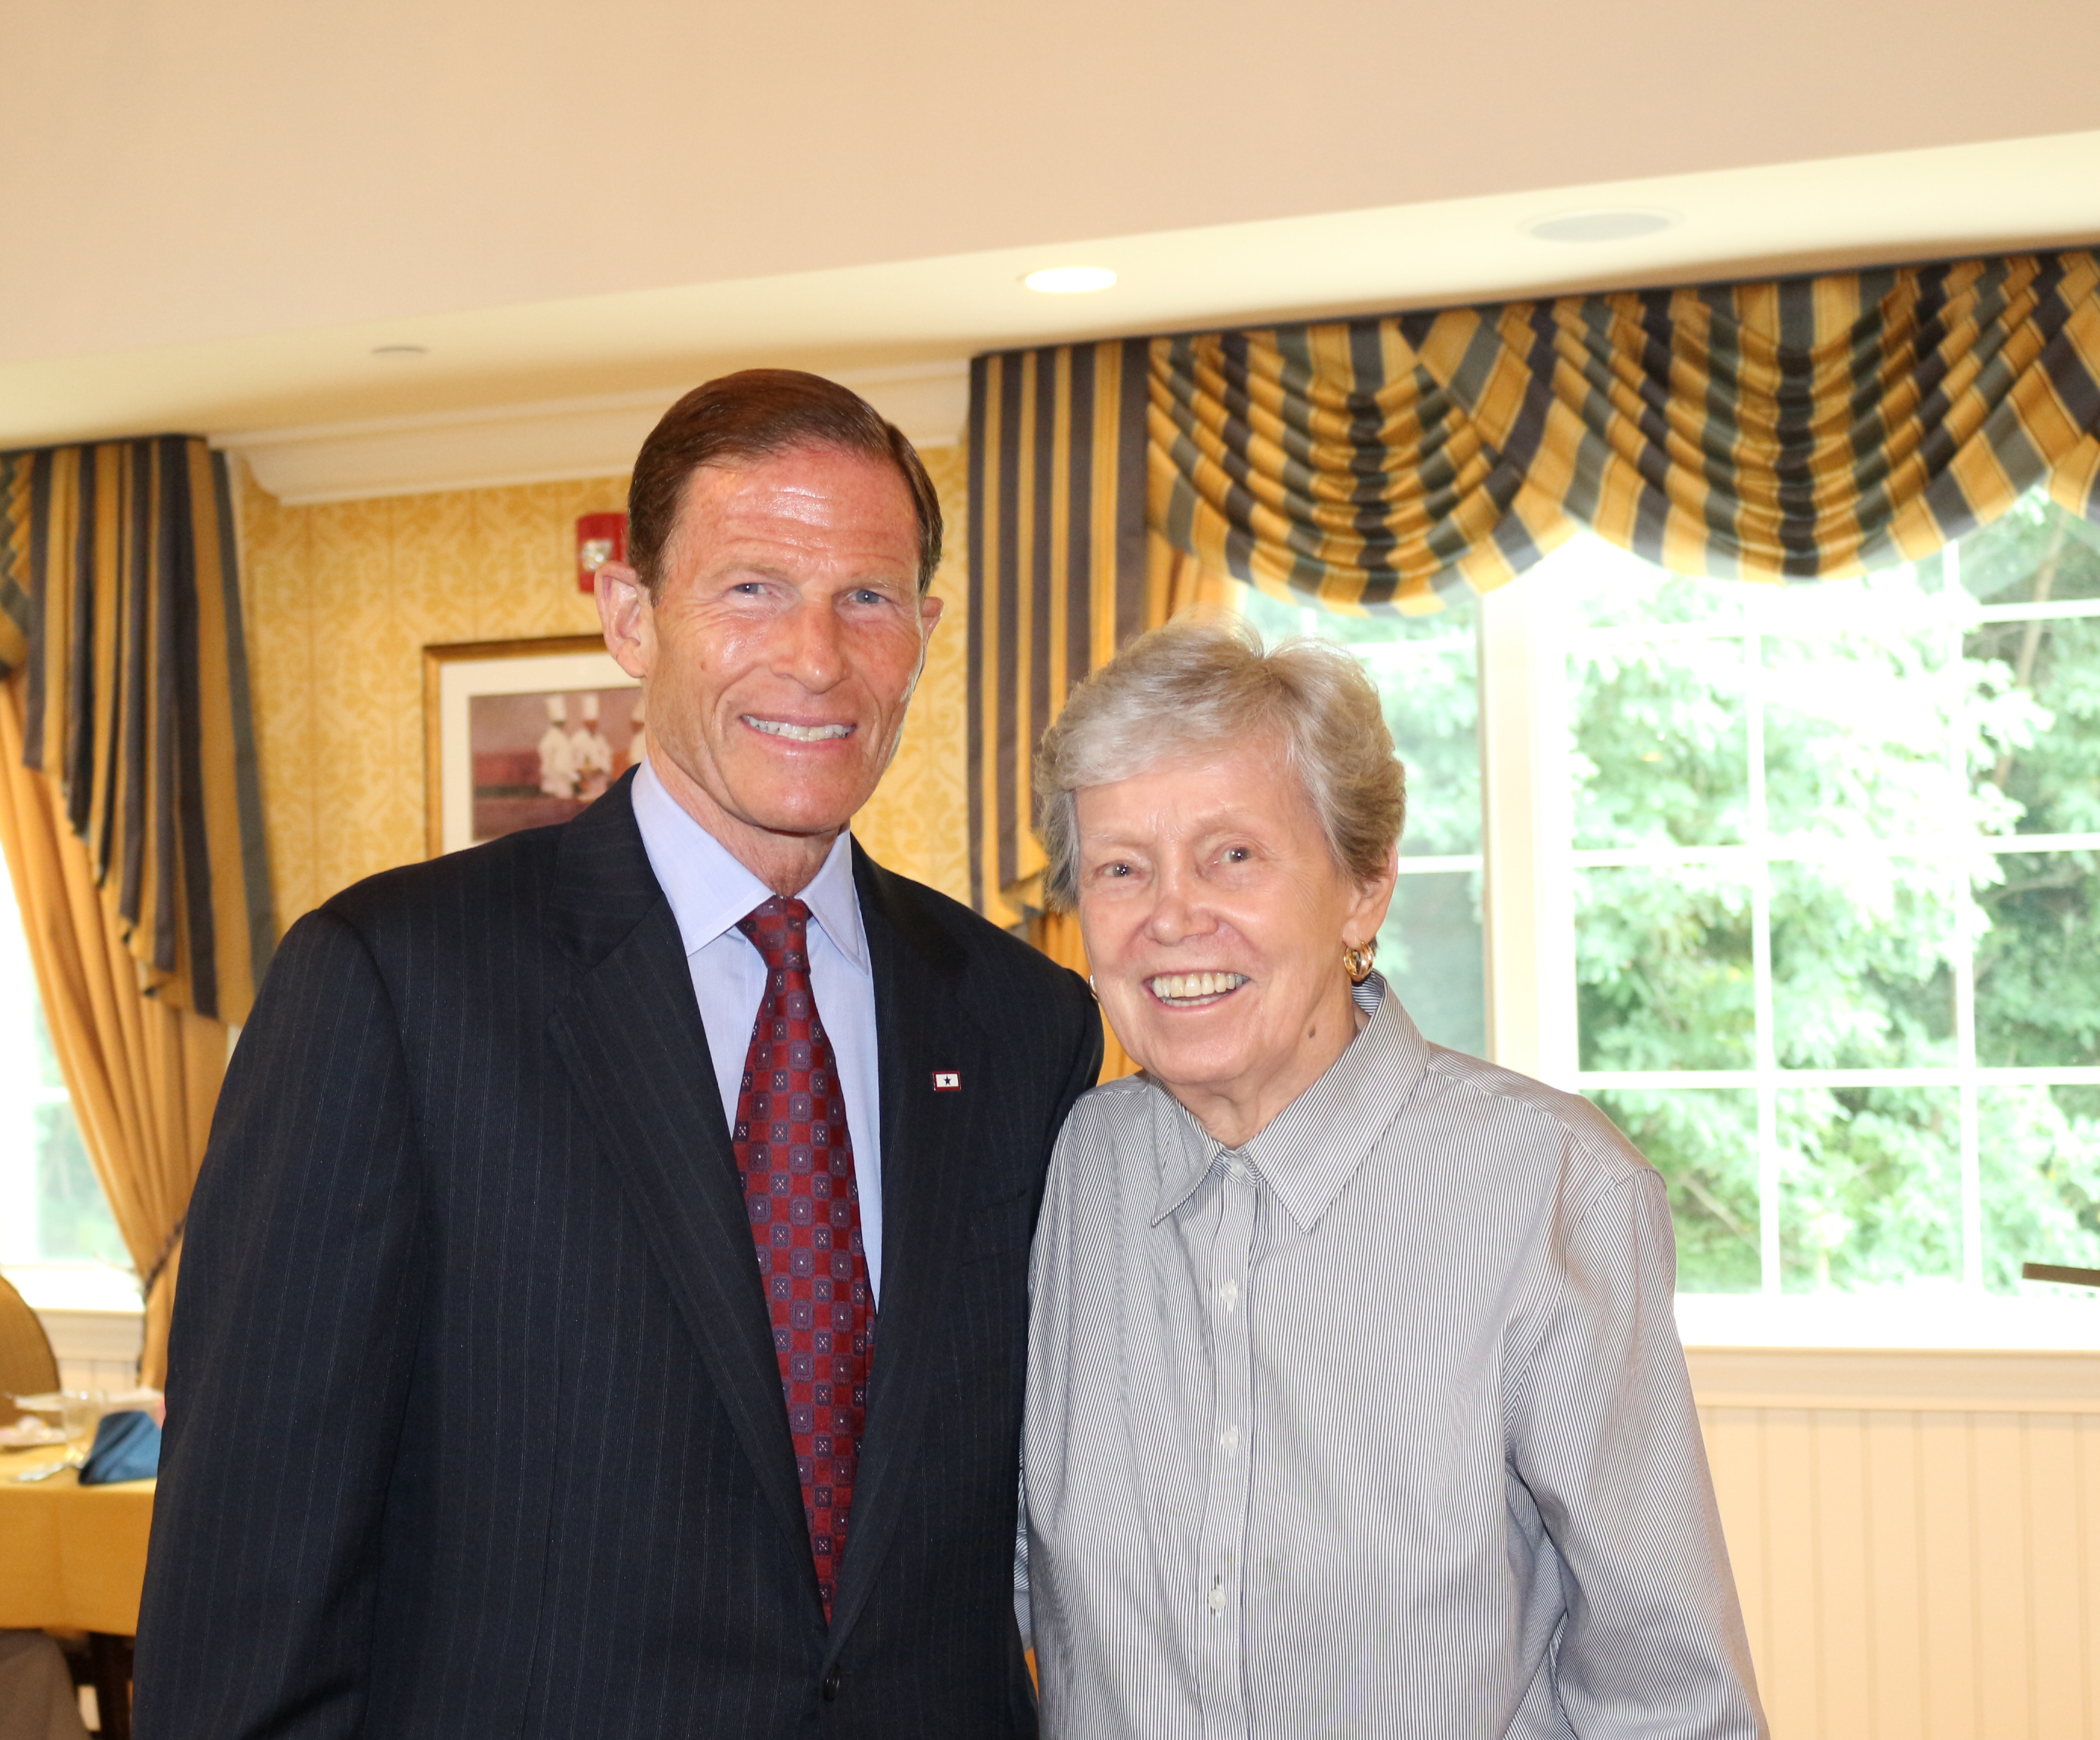 common scams, preventing seniors from scam, Senator Blumenthal, Brandywine Senior Living at Litchfield